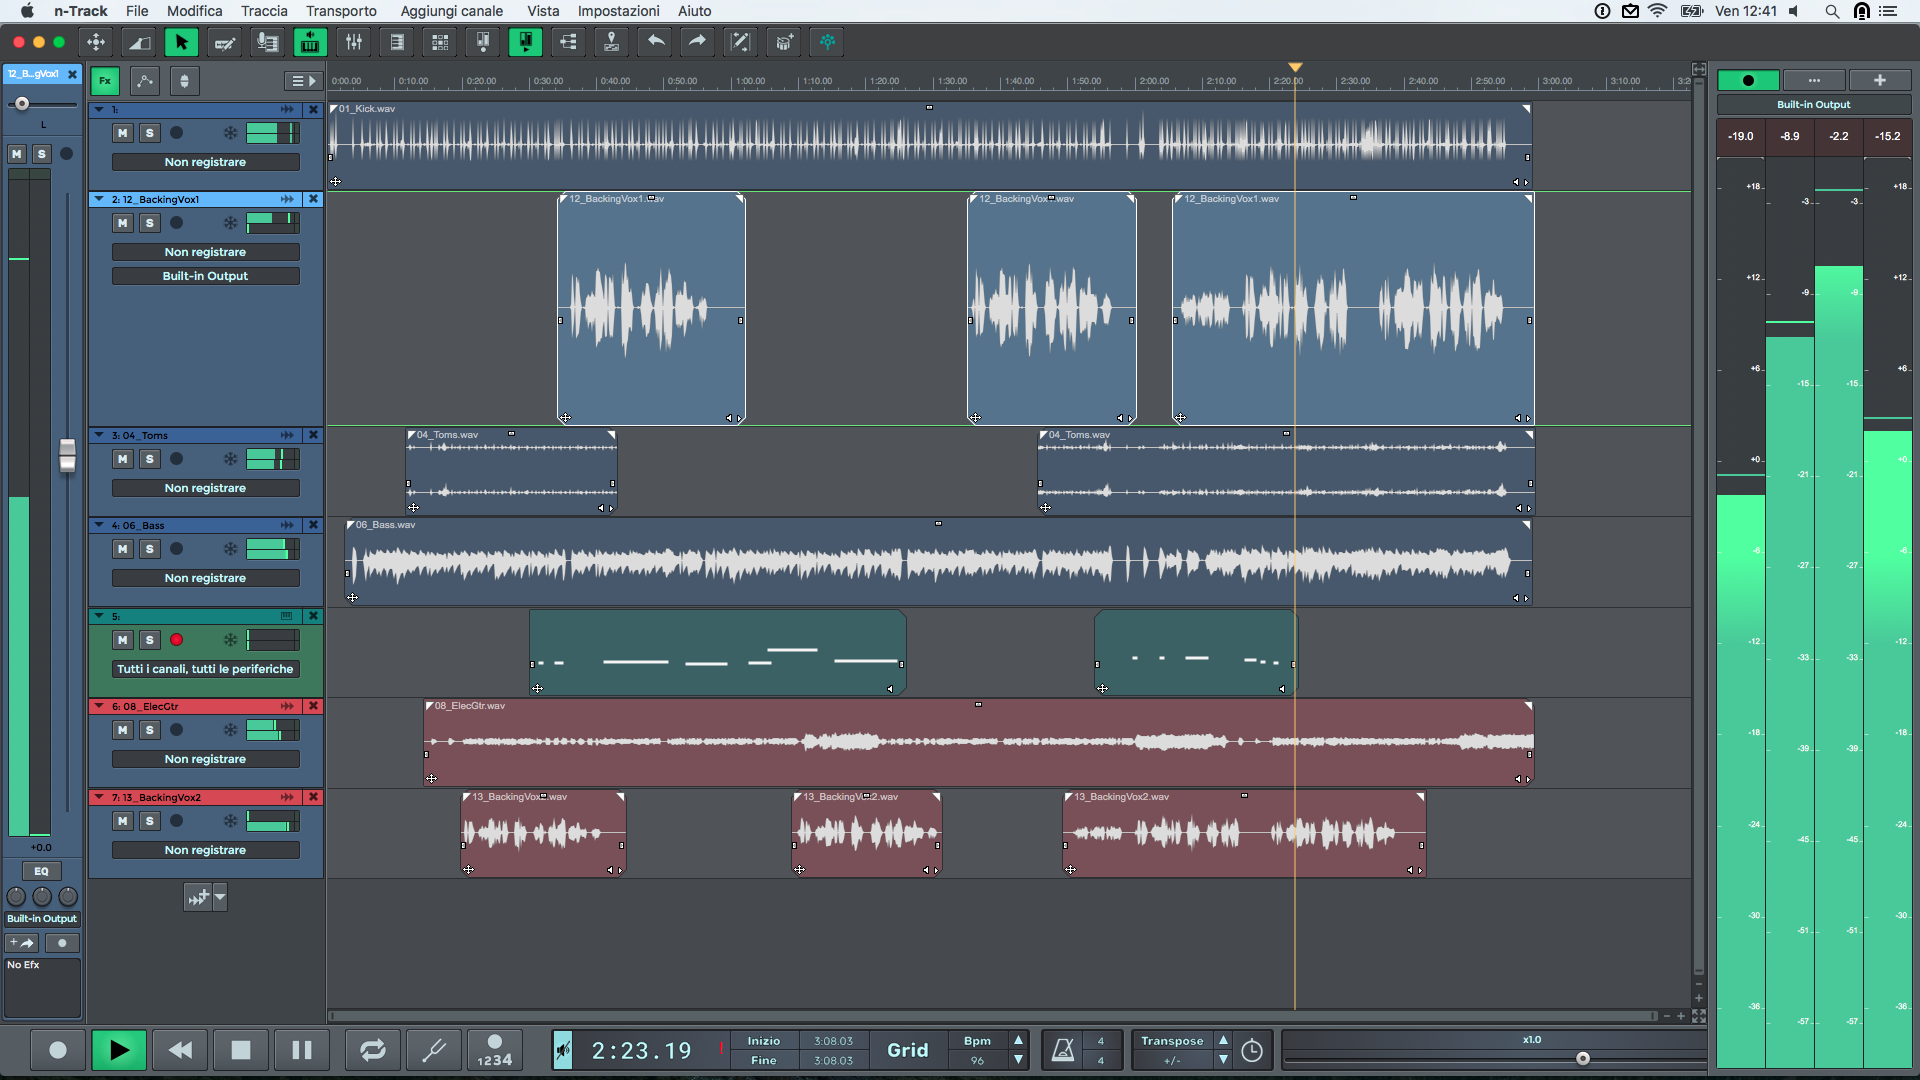 Multitrack Music Recording and Production software